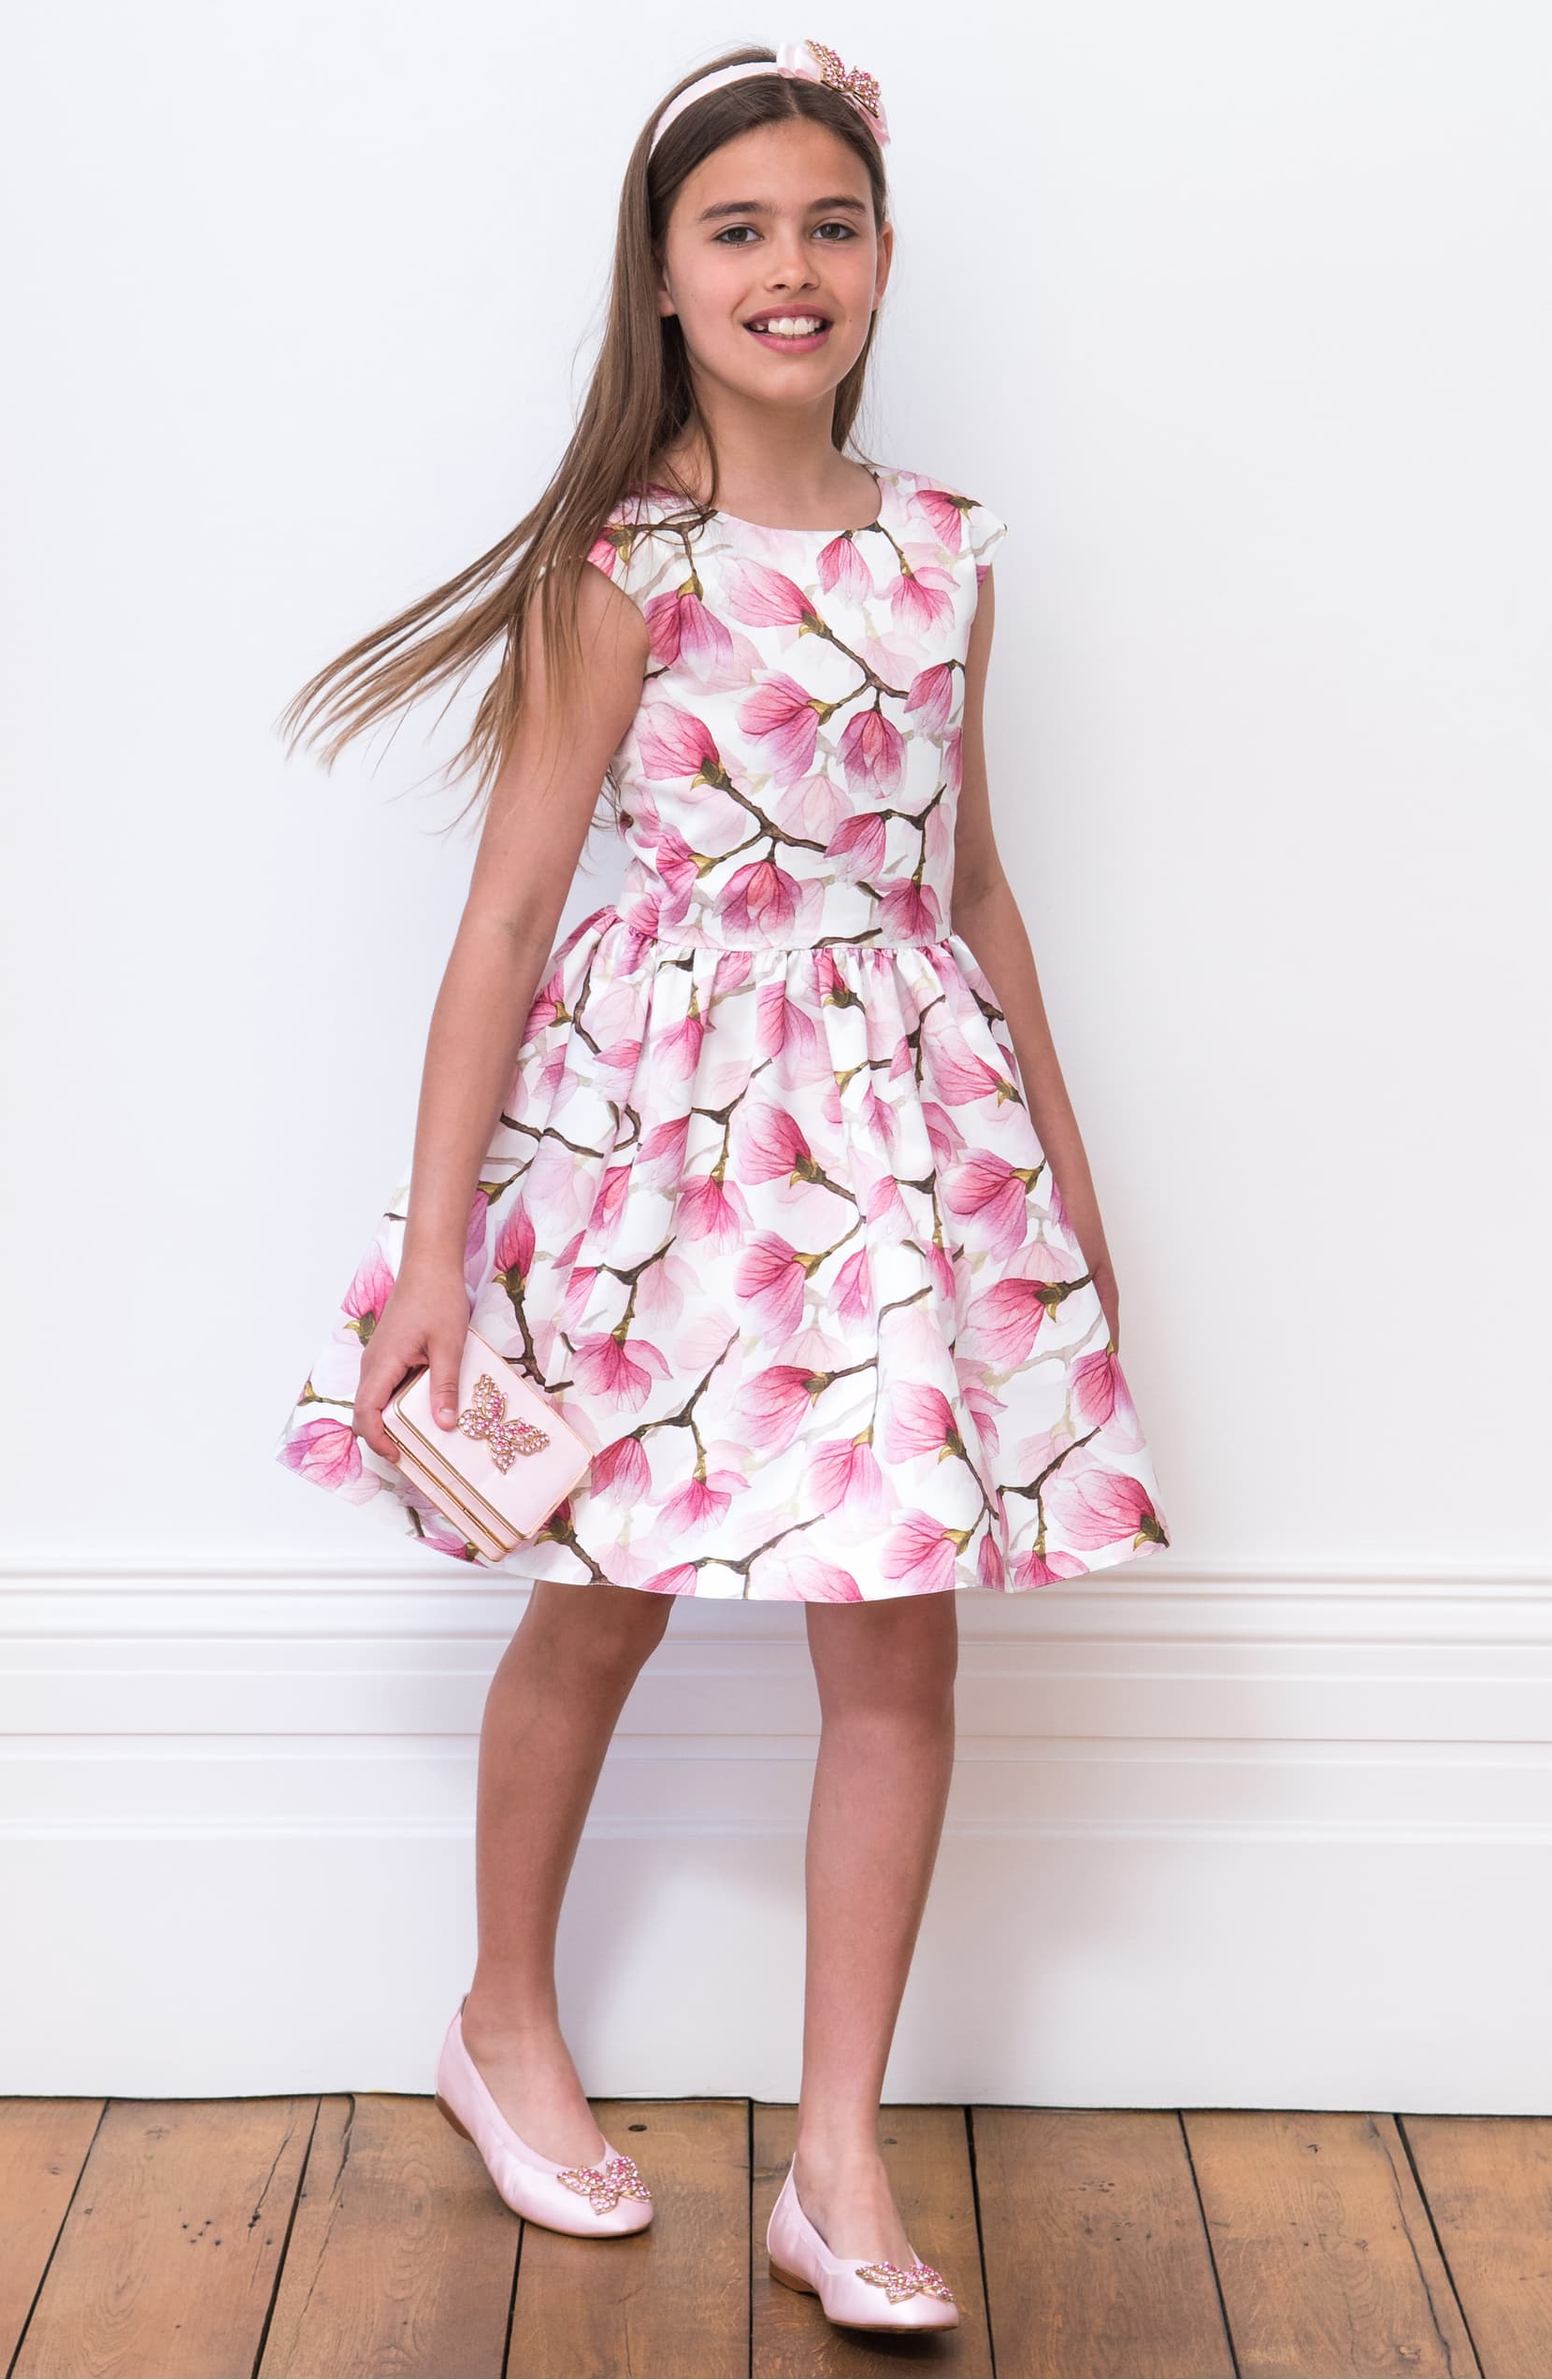 David Charles Floral Fit and Flare Dress